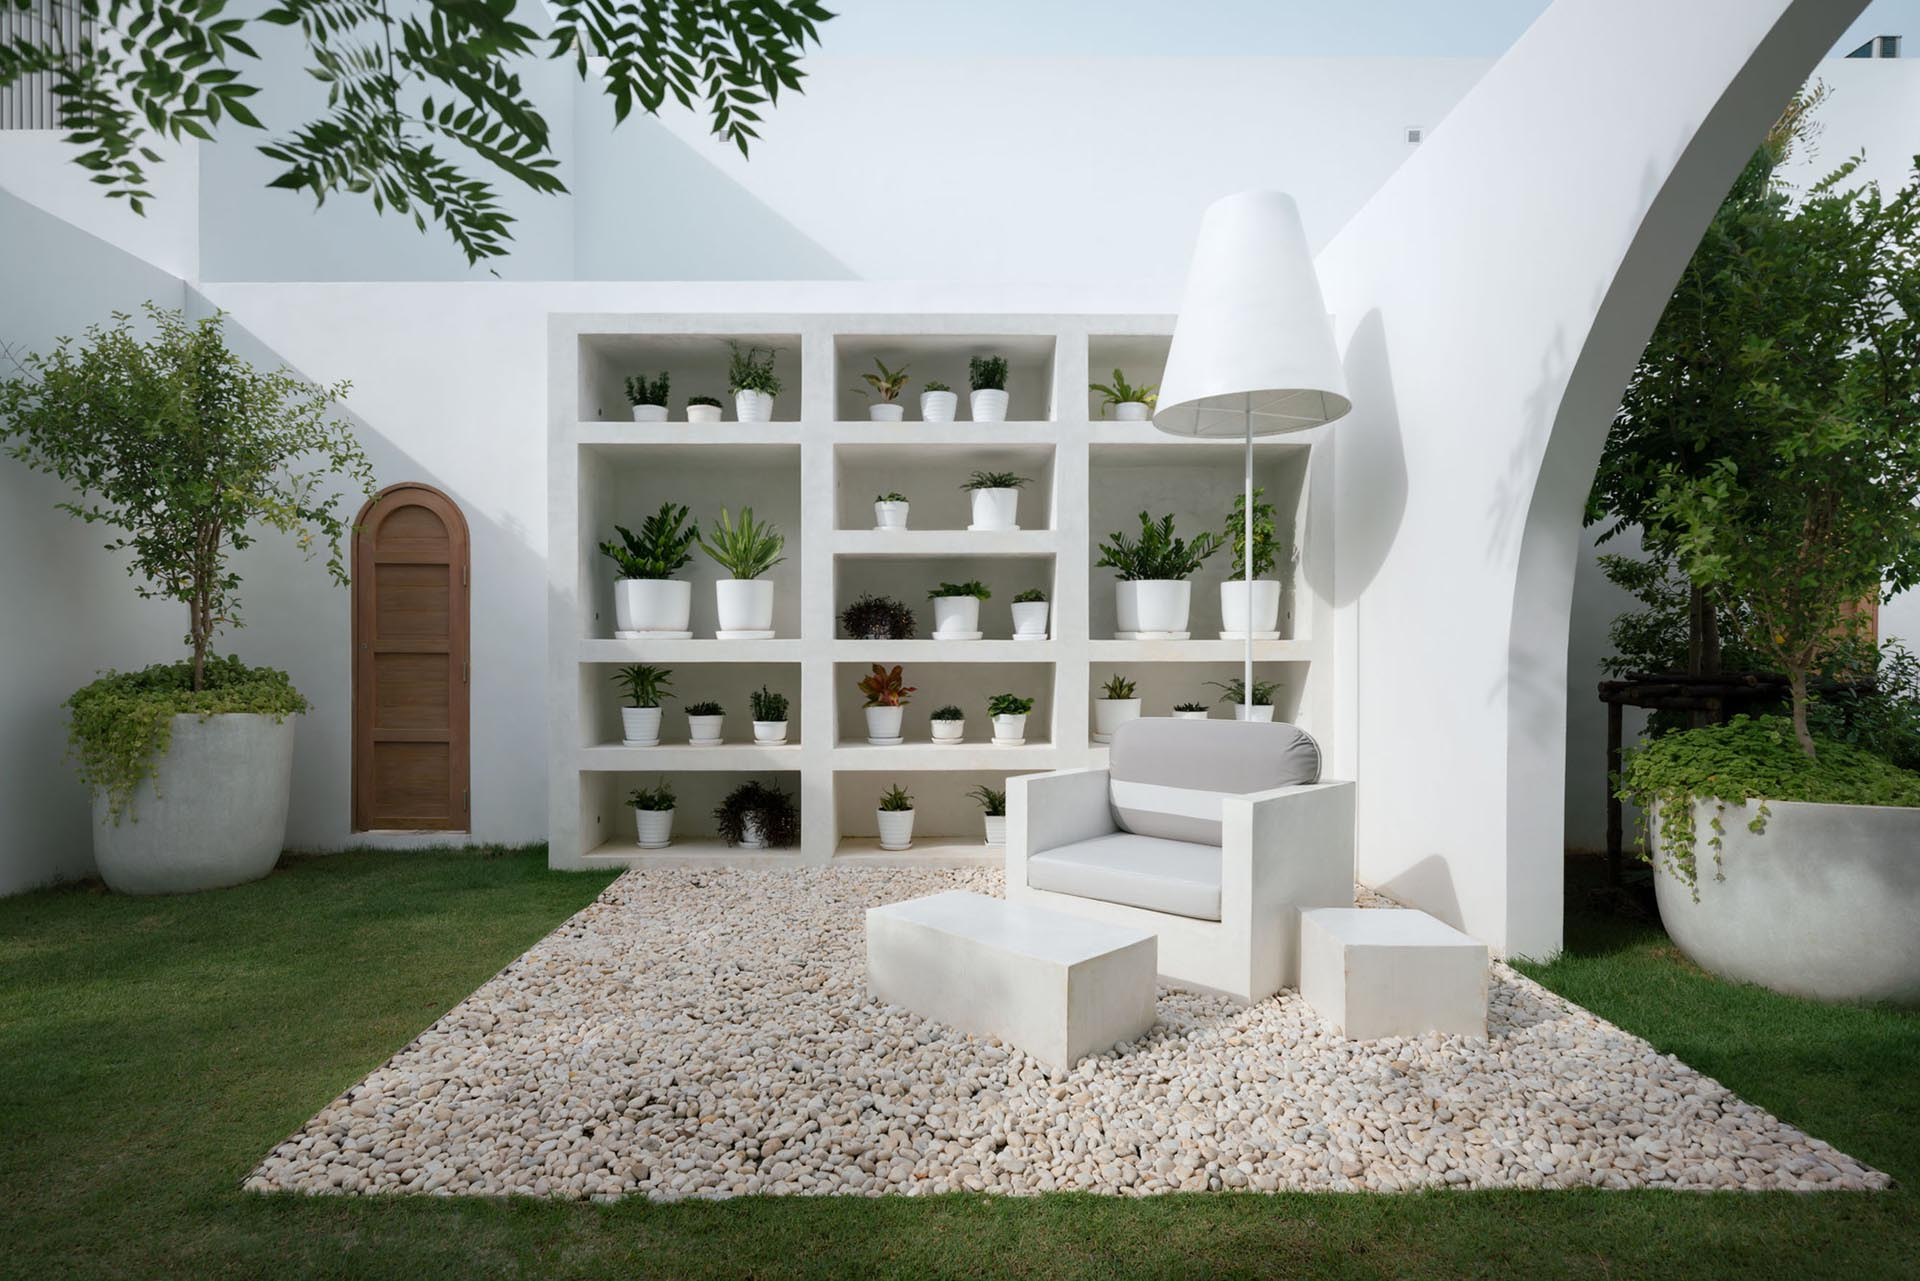 An outdoor living room with a shelving unit designed to house plants.